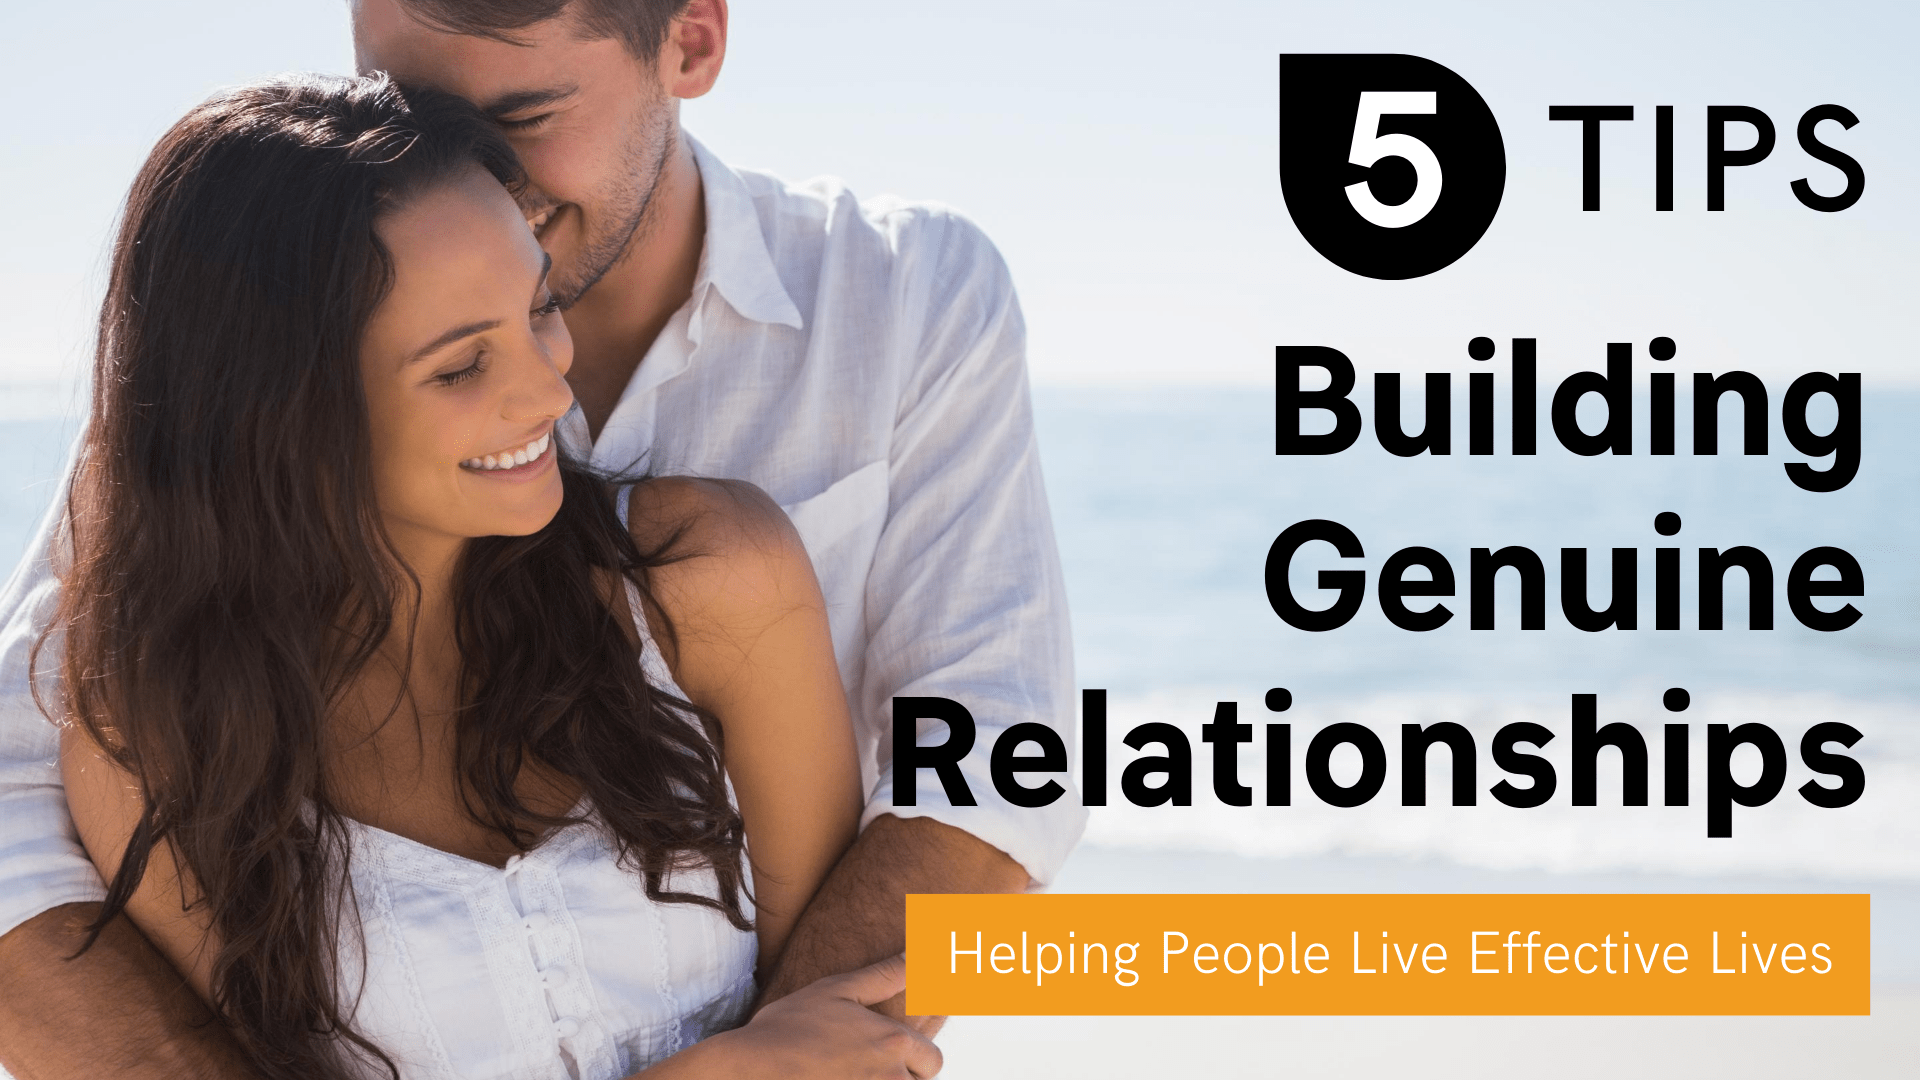 Five Tips for Building Genuine Relationships